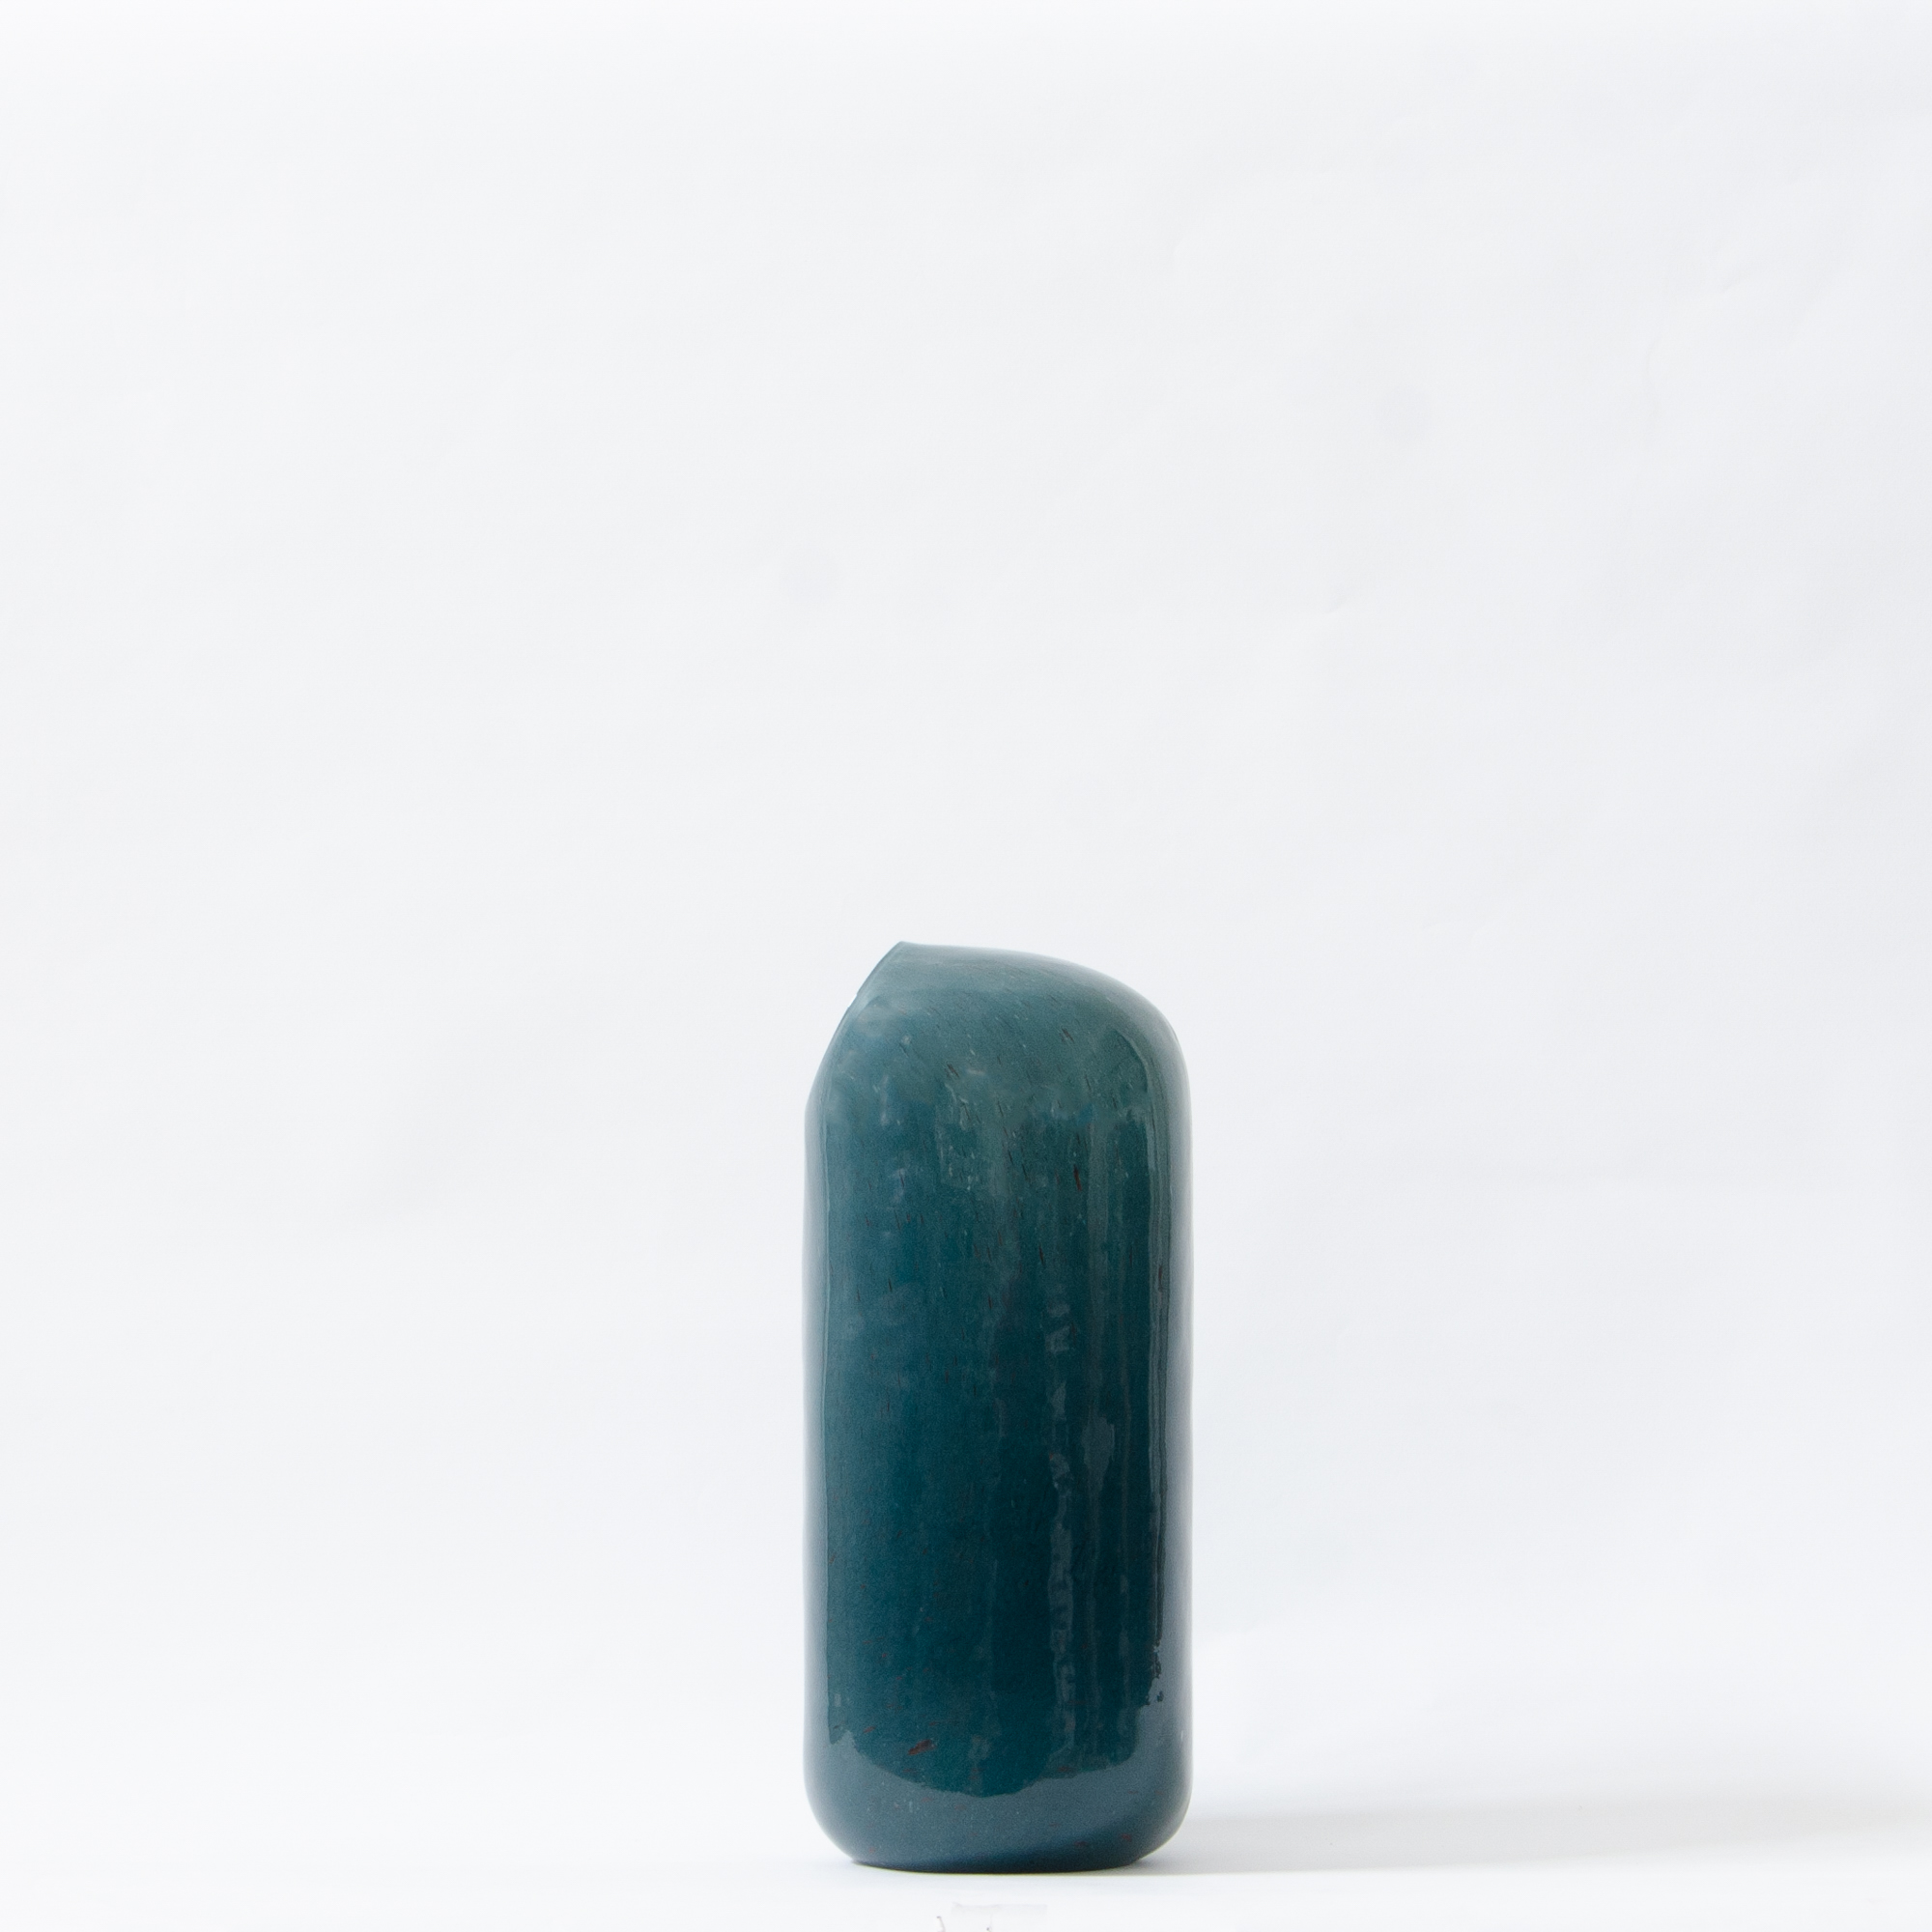 Gemstone Glass Vase - Teal